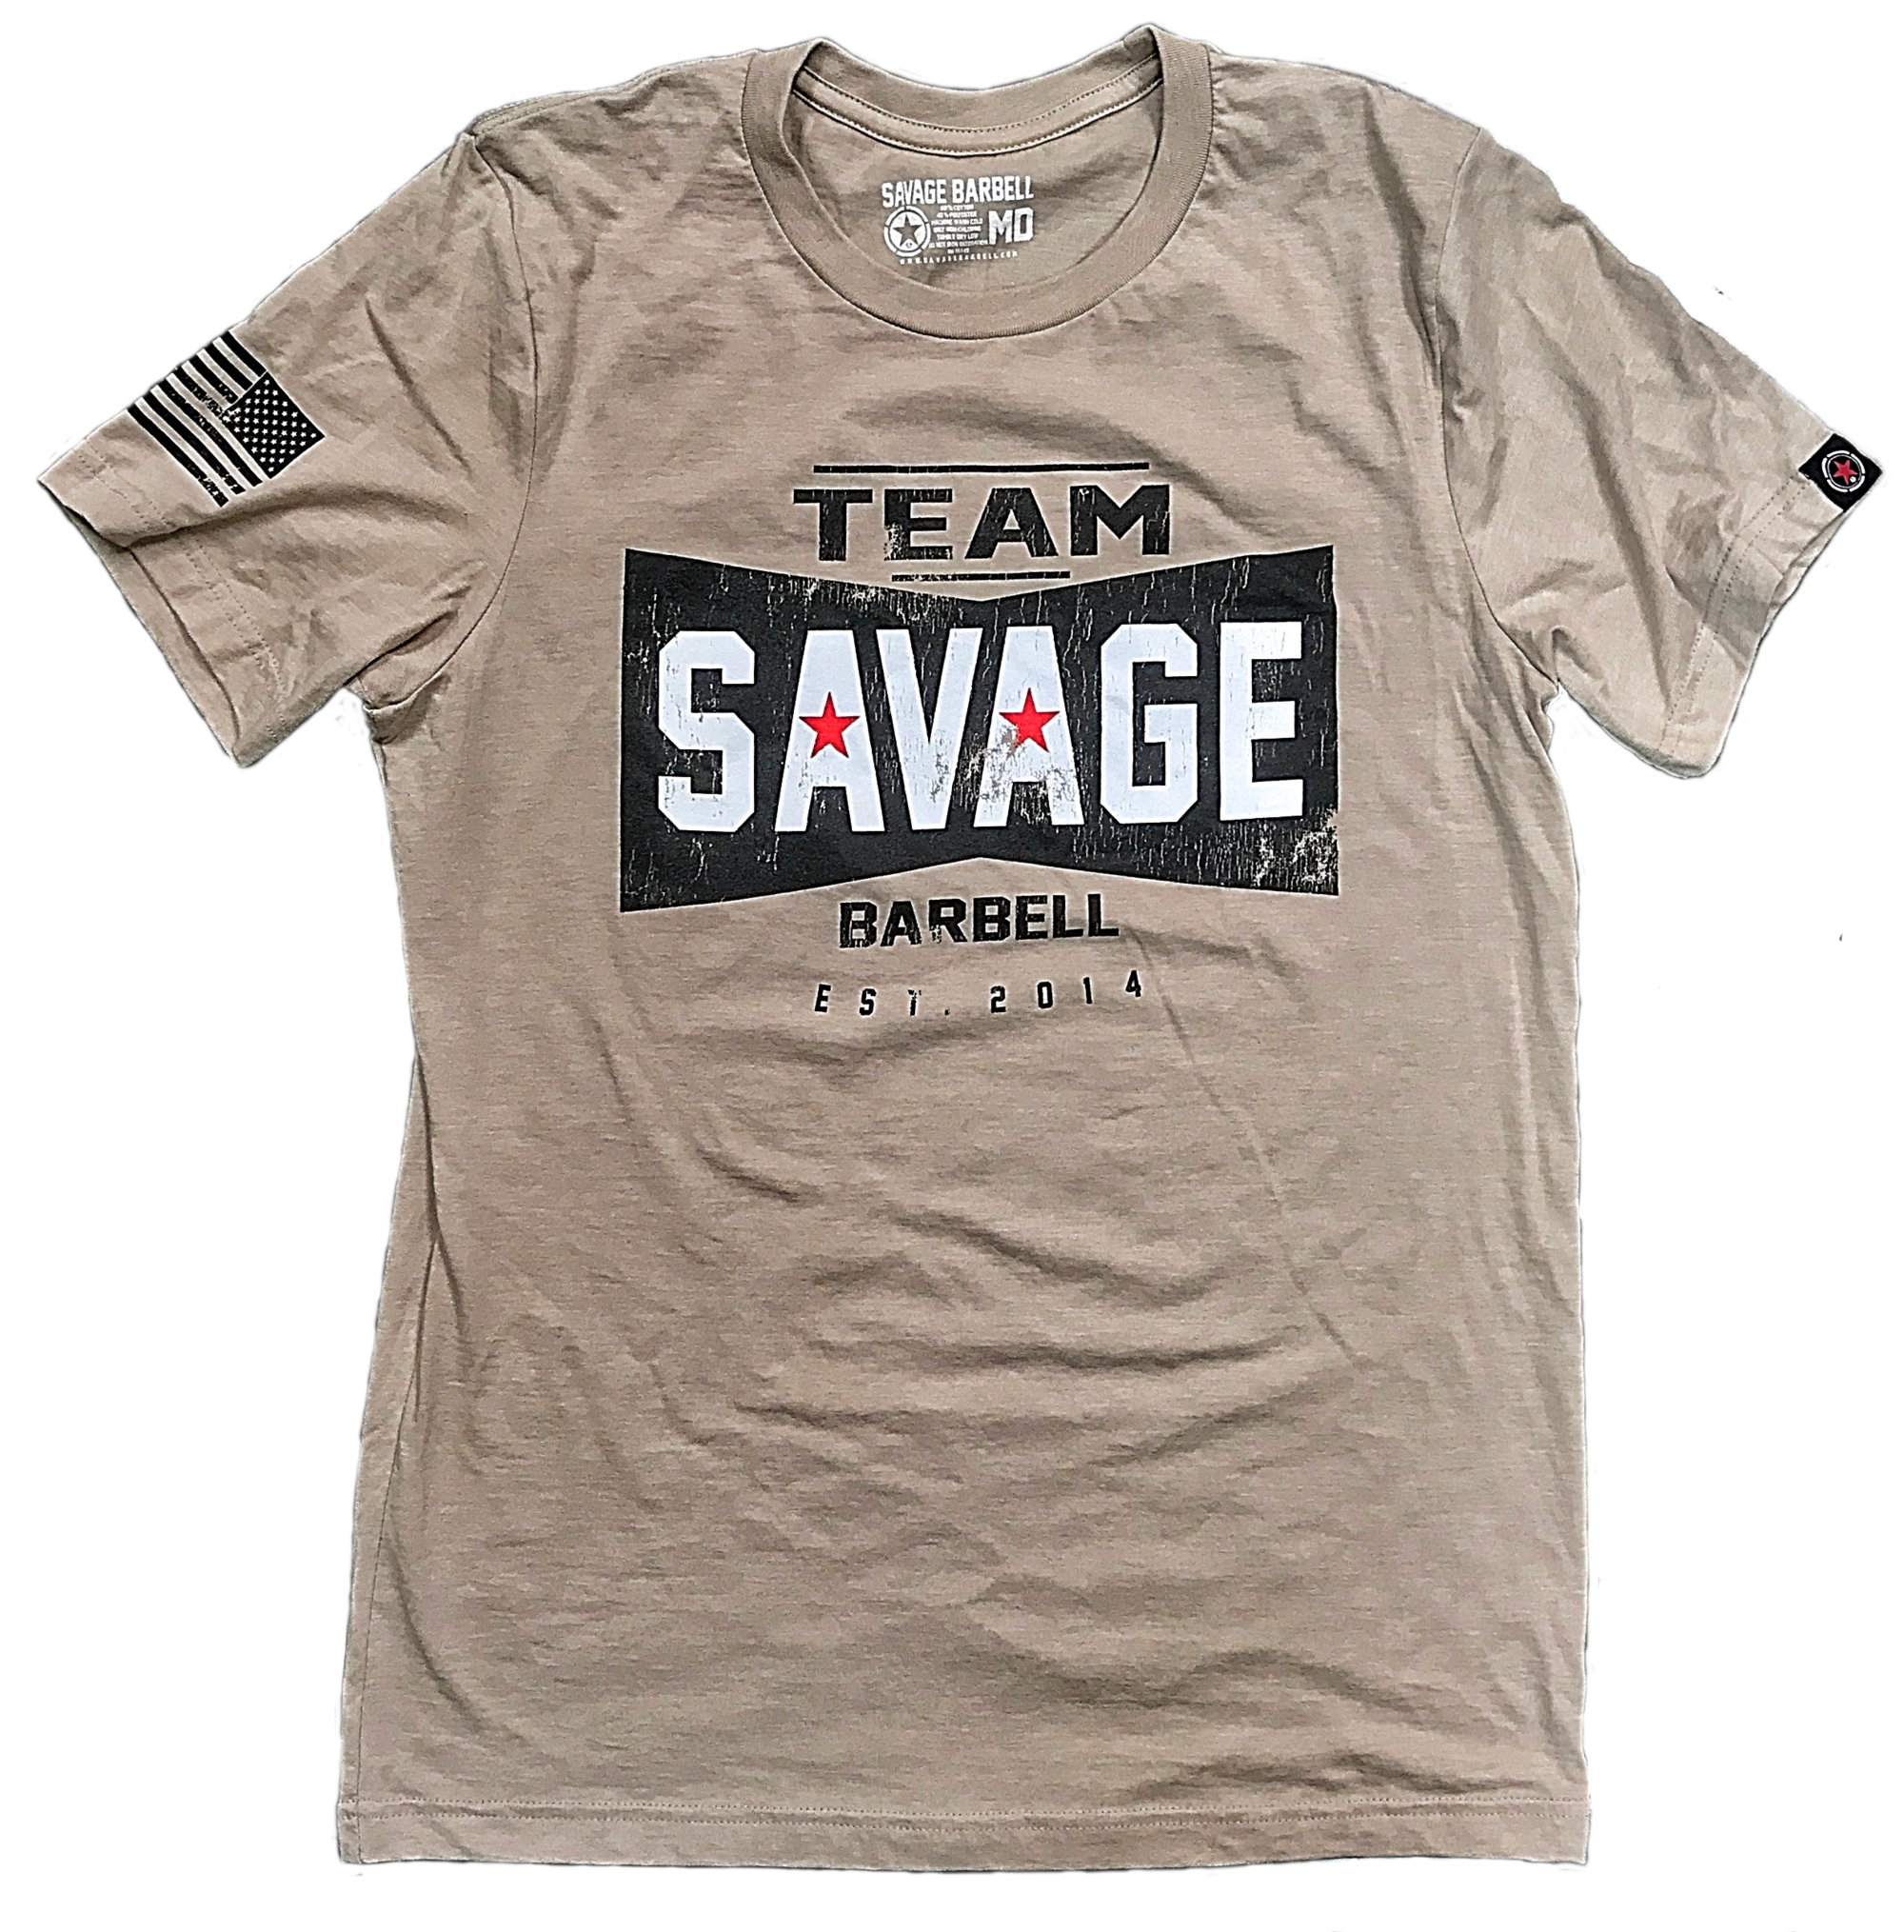 Savage transparent team. Mens t shirt barbell